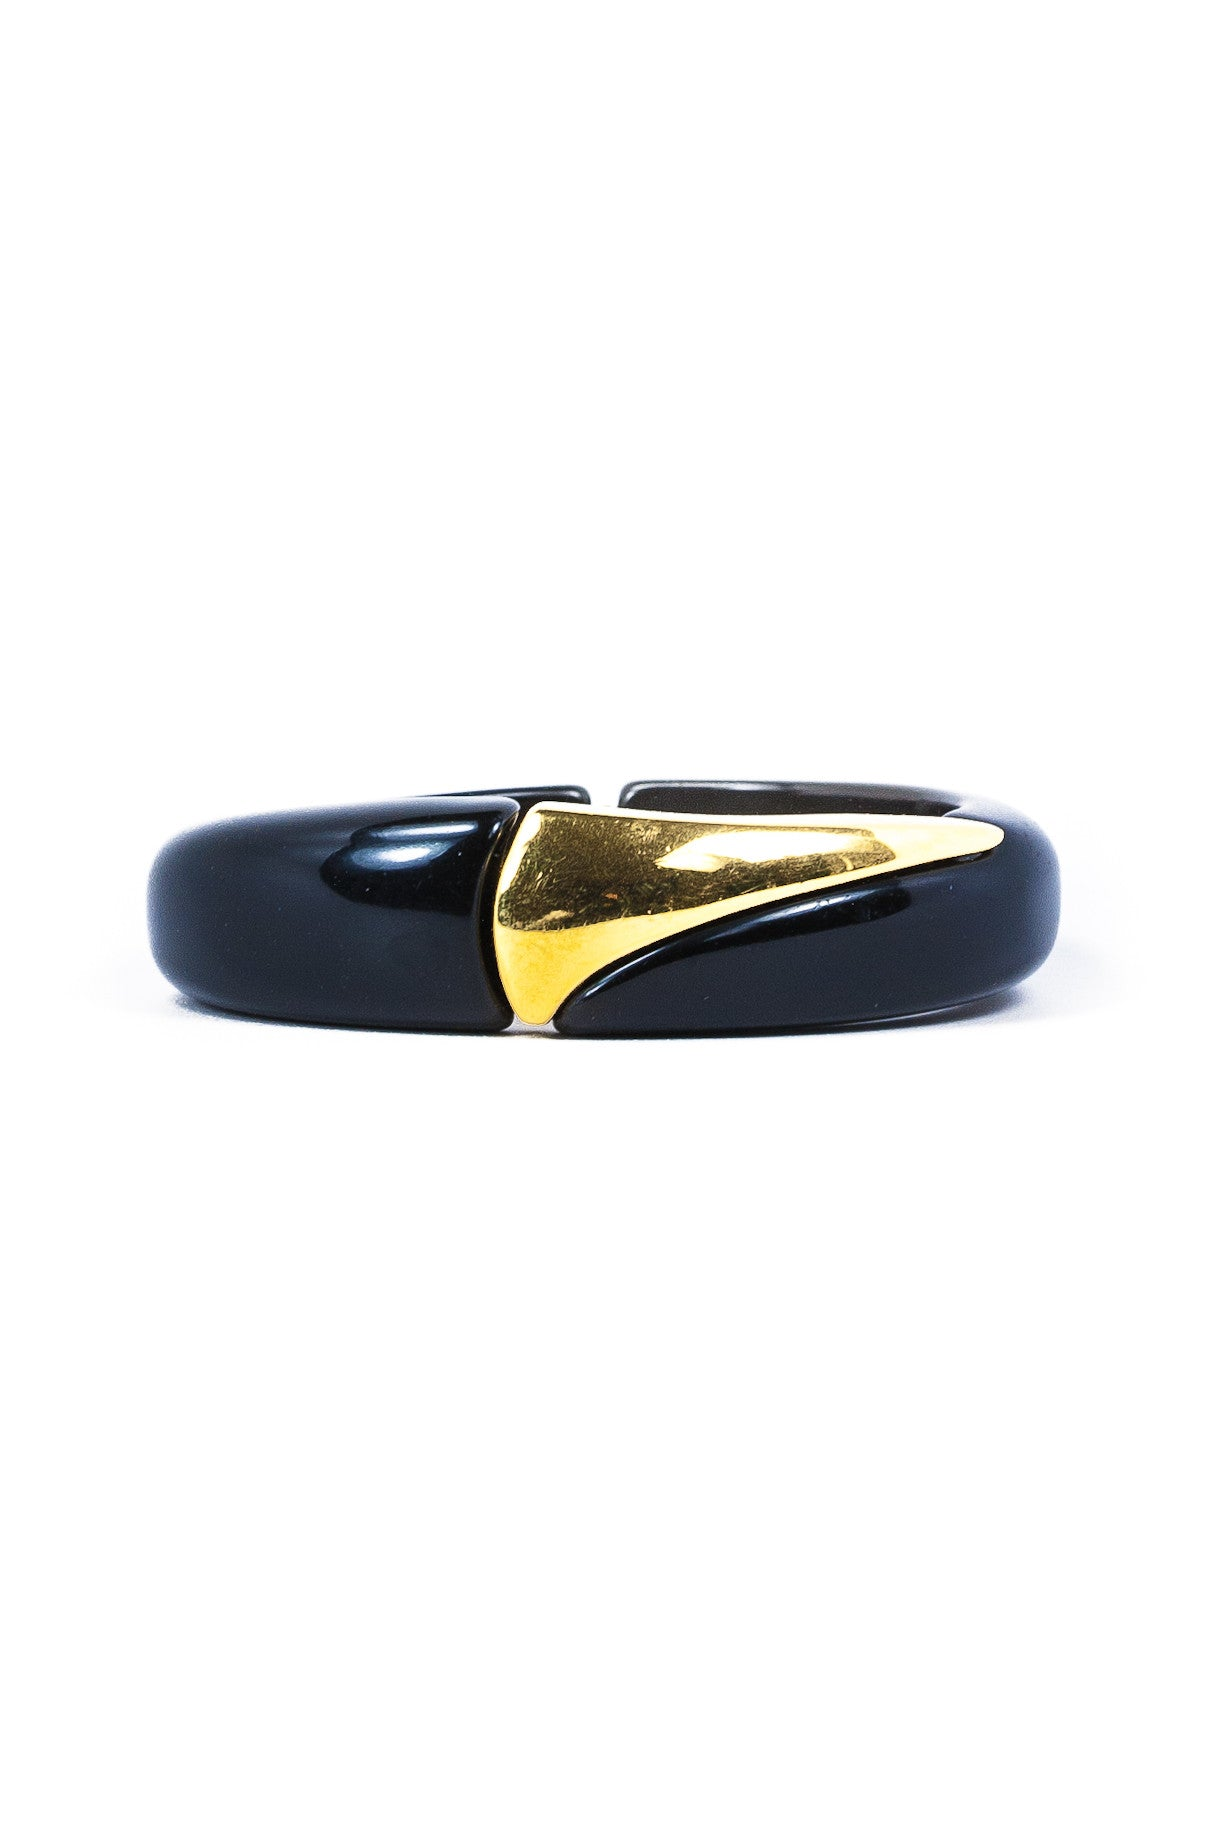 70's__Vintage__Black & Gold Bangle